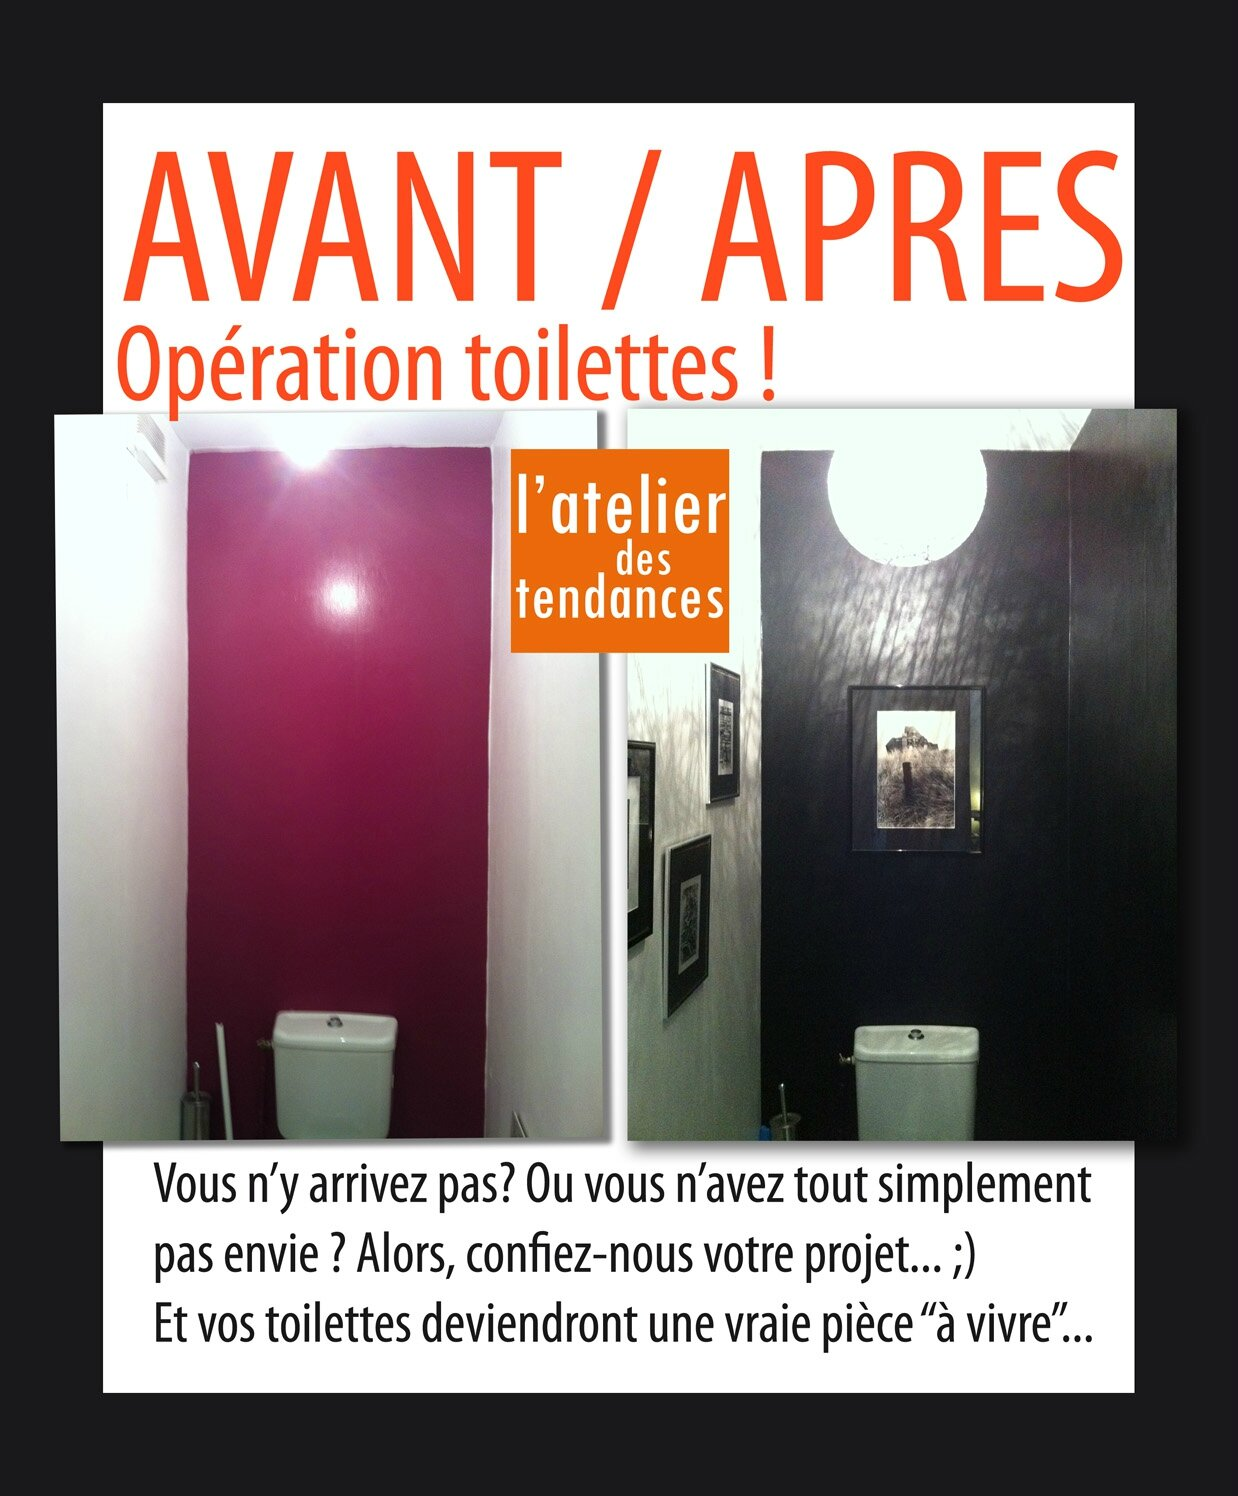 avant apres toilettes photo de conseil d co rozenn krebel photographe. Black Bedroom Furniture Sets. Home Design Ideas